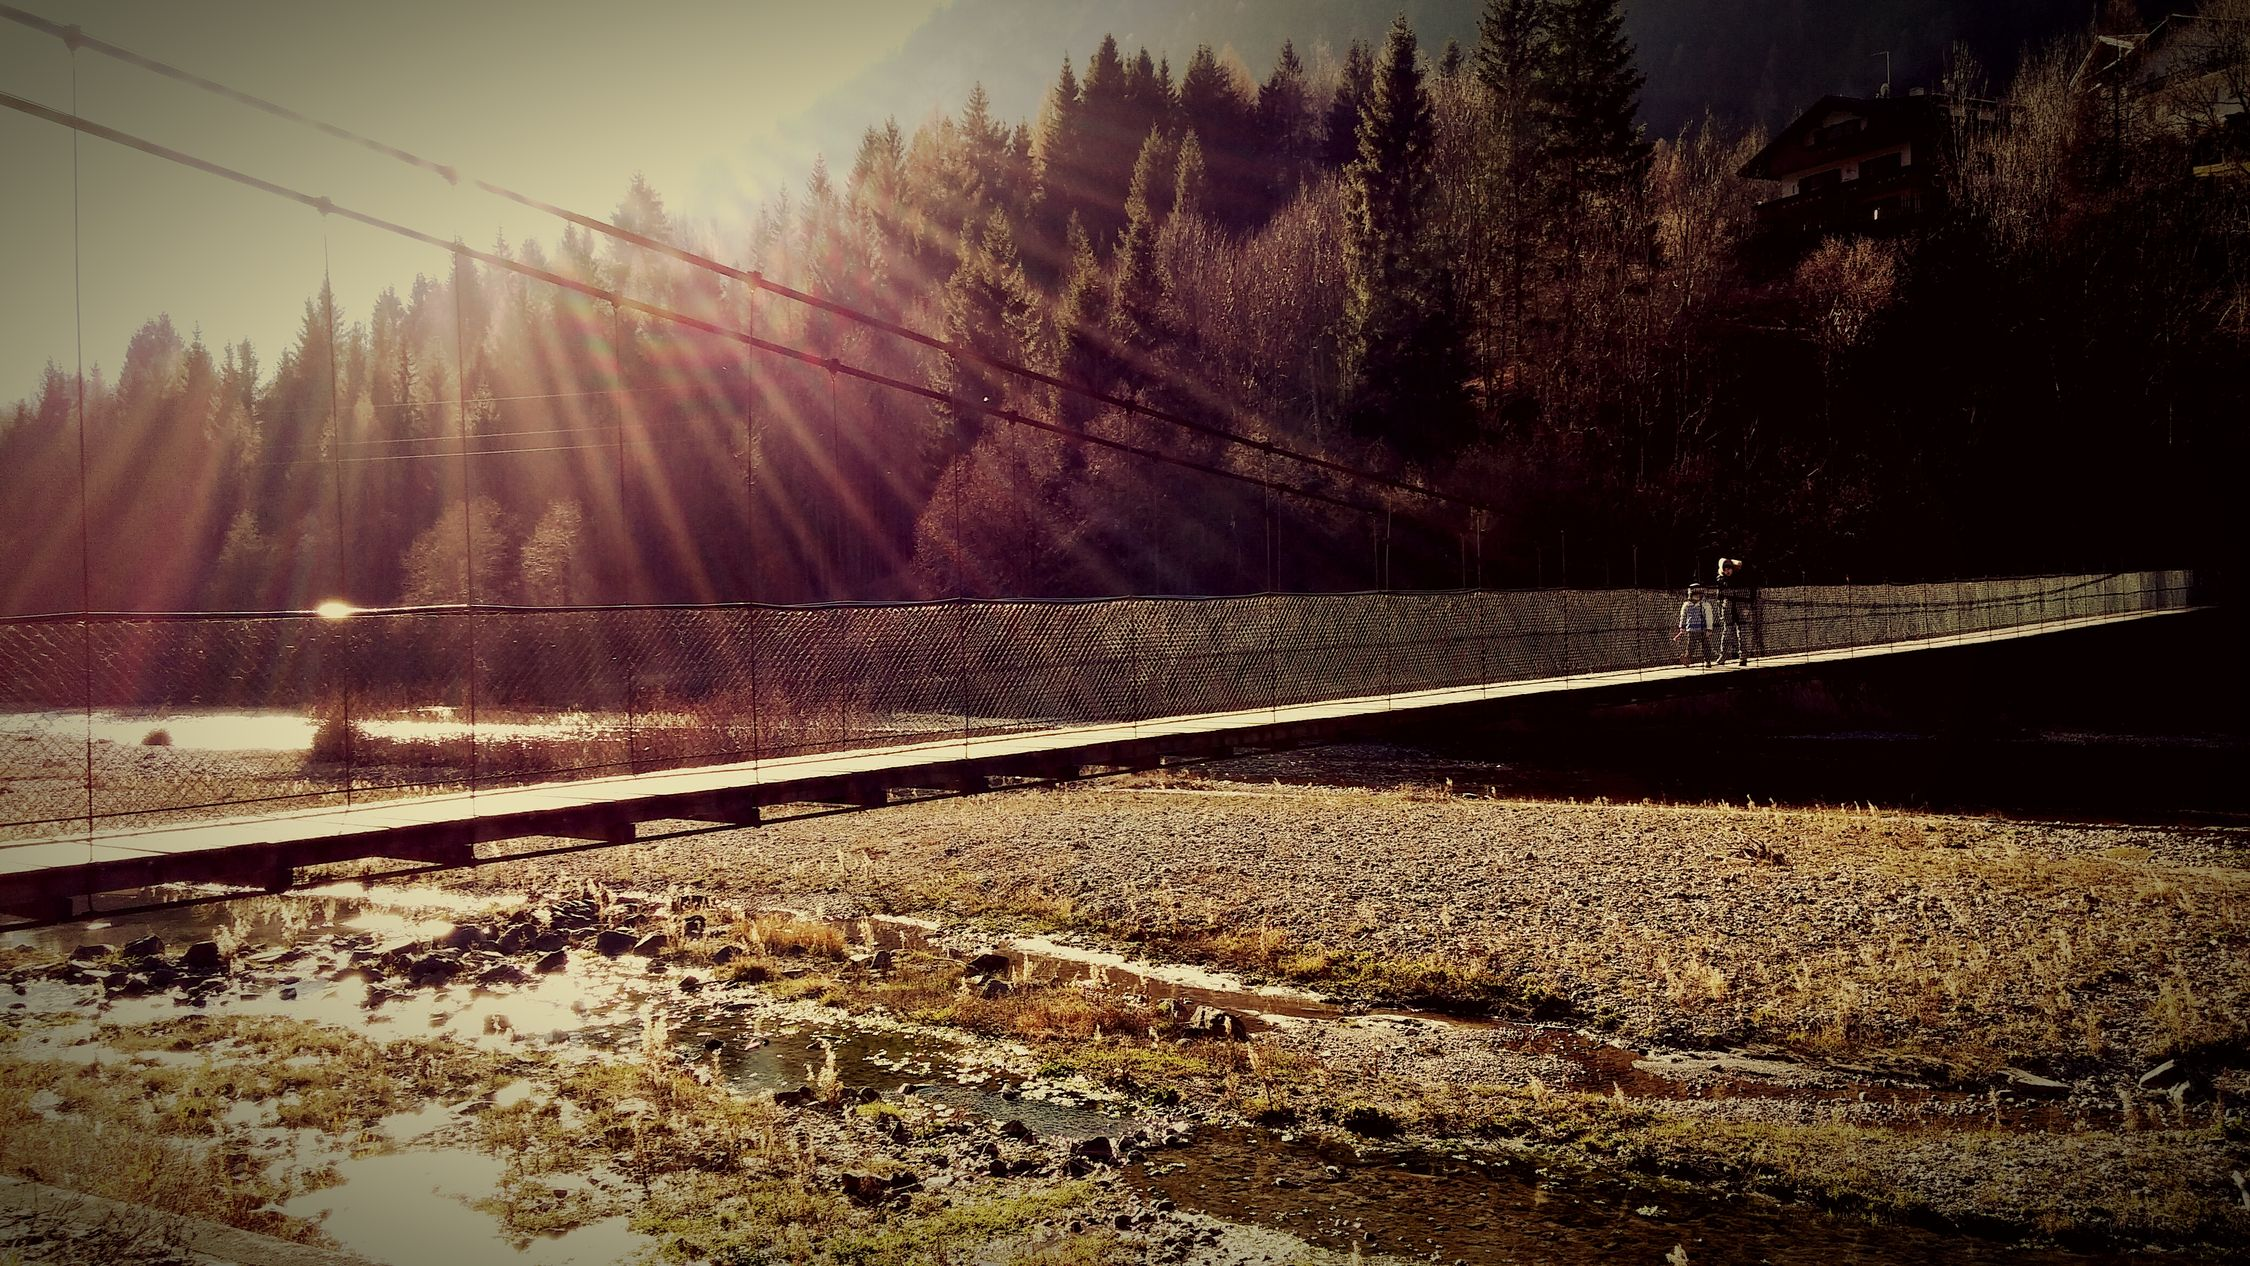 Showcase: December Cold Days Autumn River Bridge Check This Out Hello World Taking Photos Walking Around Kids Sunny Enjoying Life Relaxing Original Experiences 43 Golden Moments People And Places